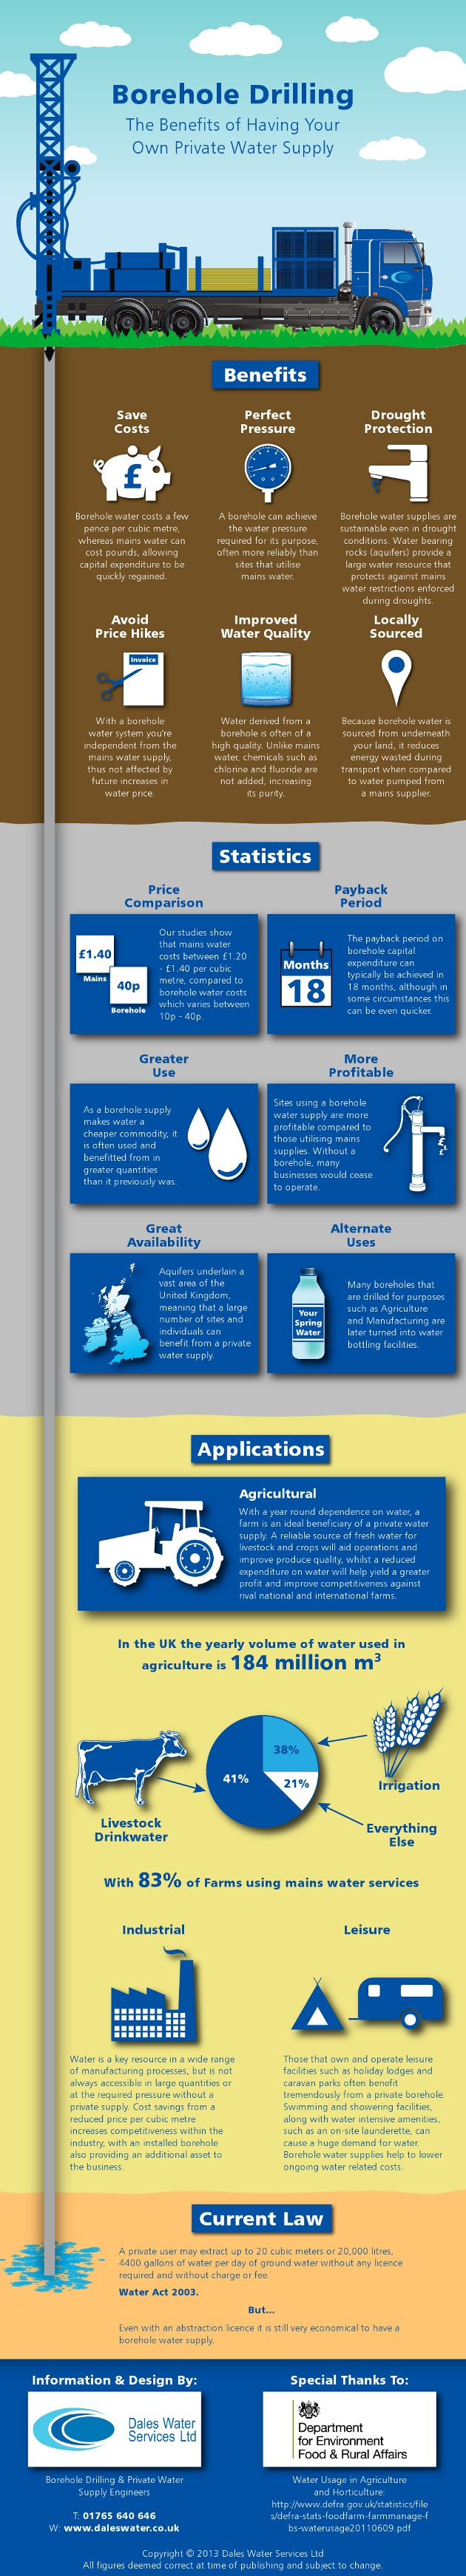 #INFOgraphic > Borehole Water Supply 101: Have you ever wondered about the benefits of taking your own water supply off mains and tapping into groundwater to power your business or home? This graphic outlines many of the benefits of utilising borehole water, the applications of it and the savings someone can make.how much you'd be... > http://infographicsmania.com/borehole-water-supply-101/